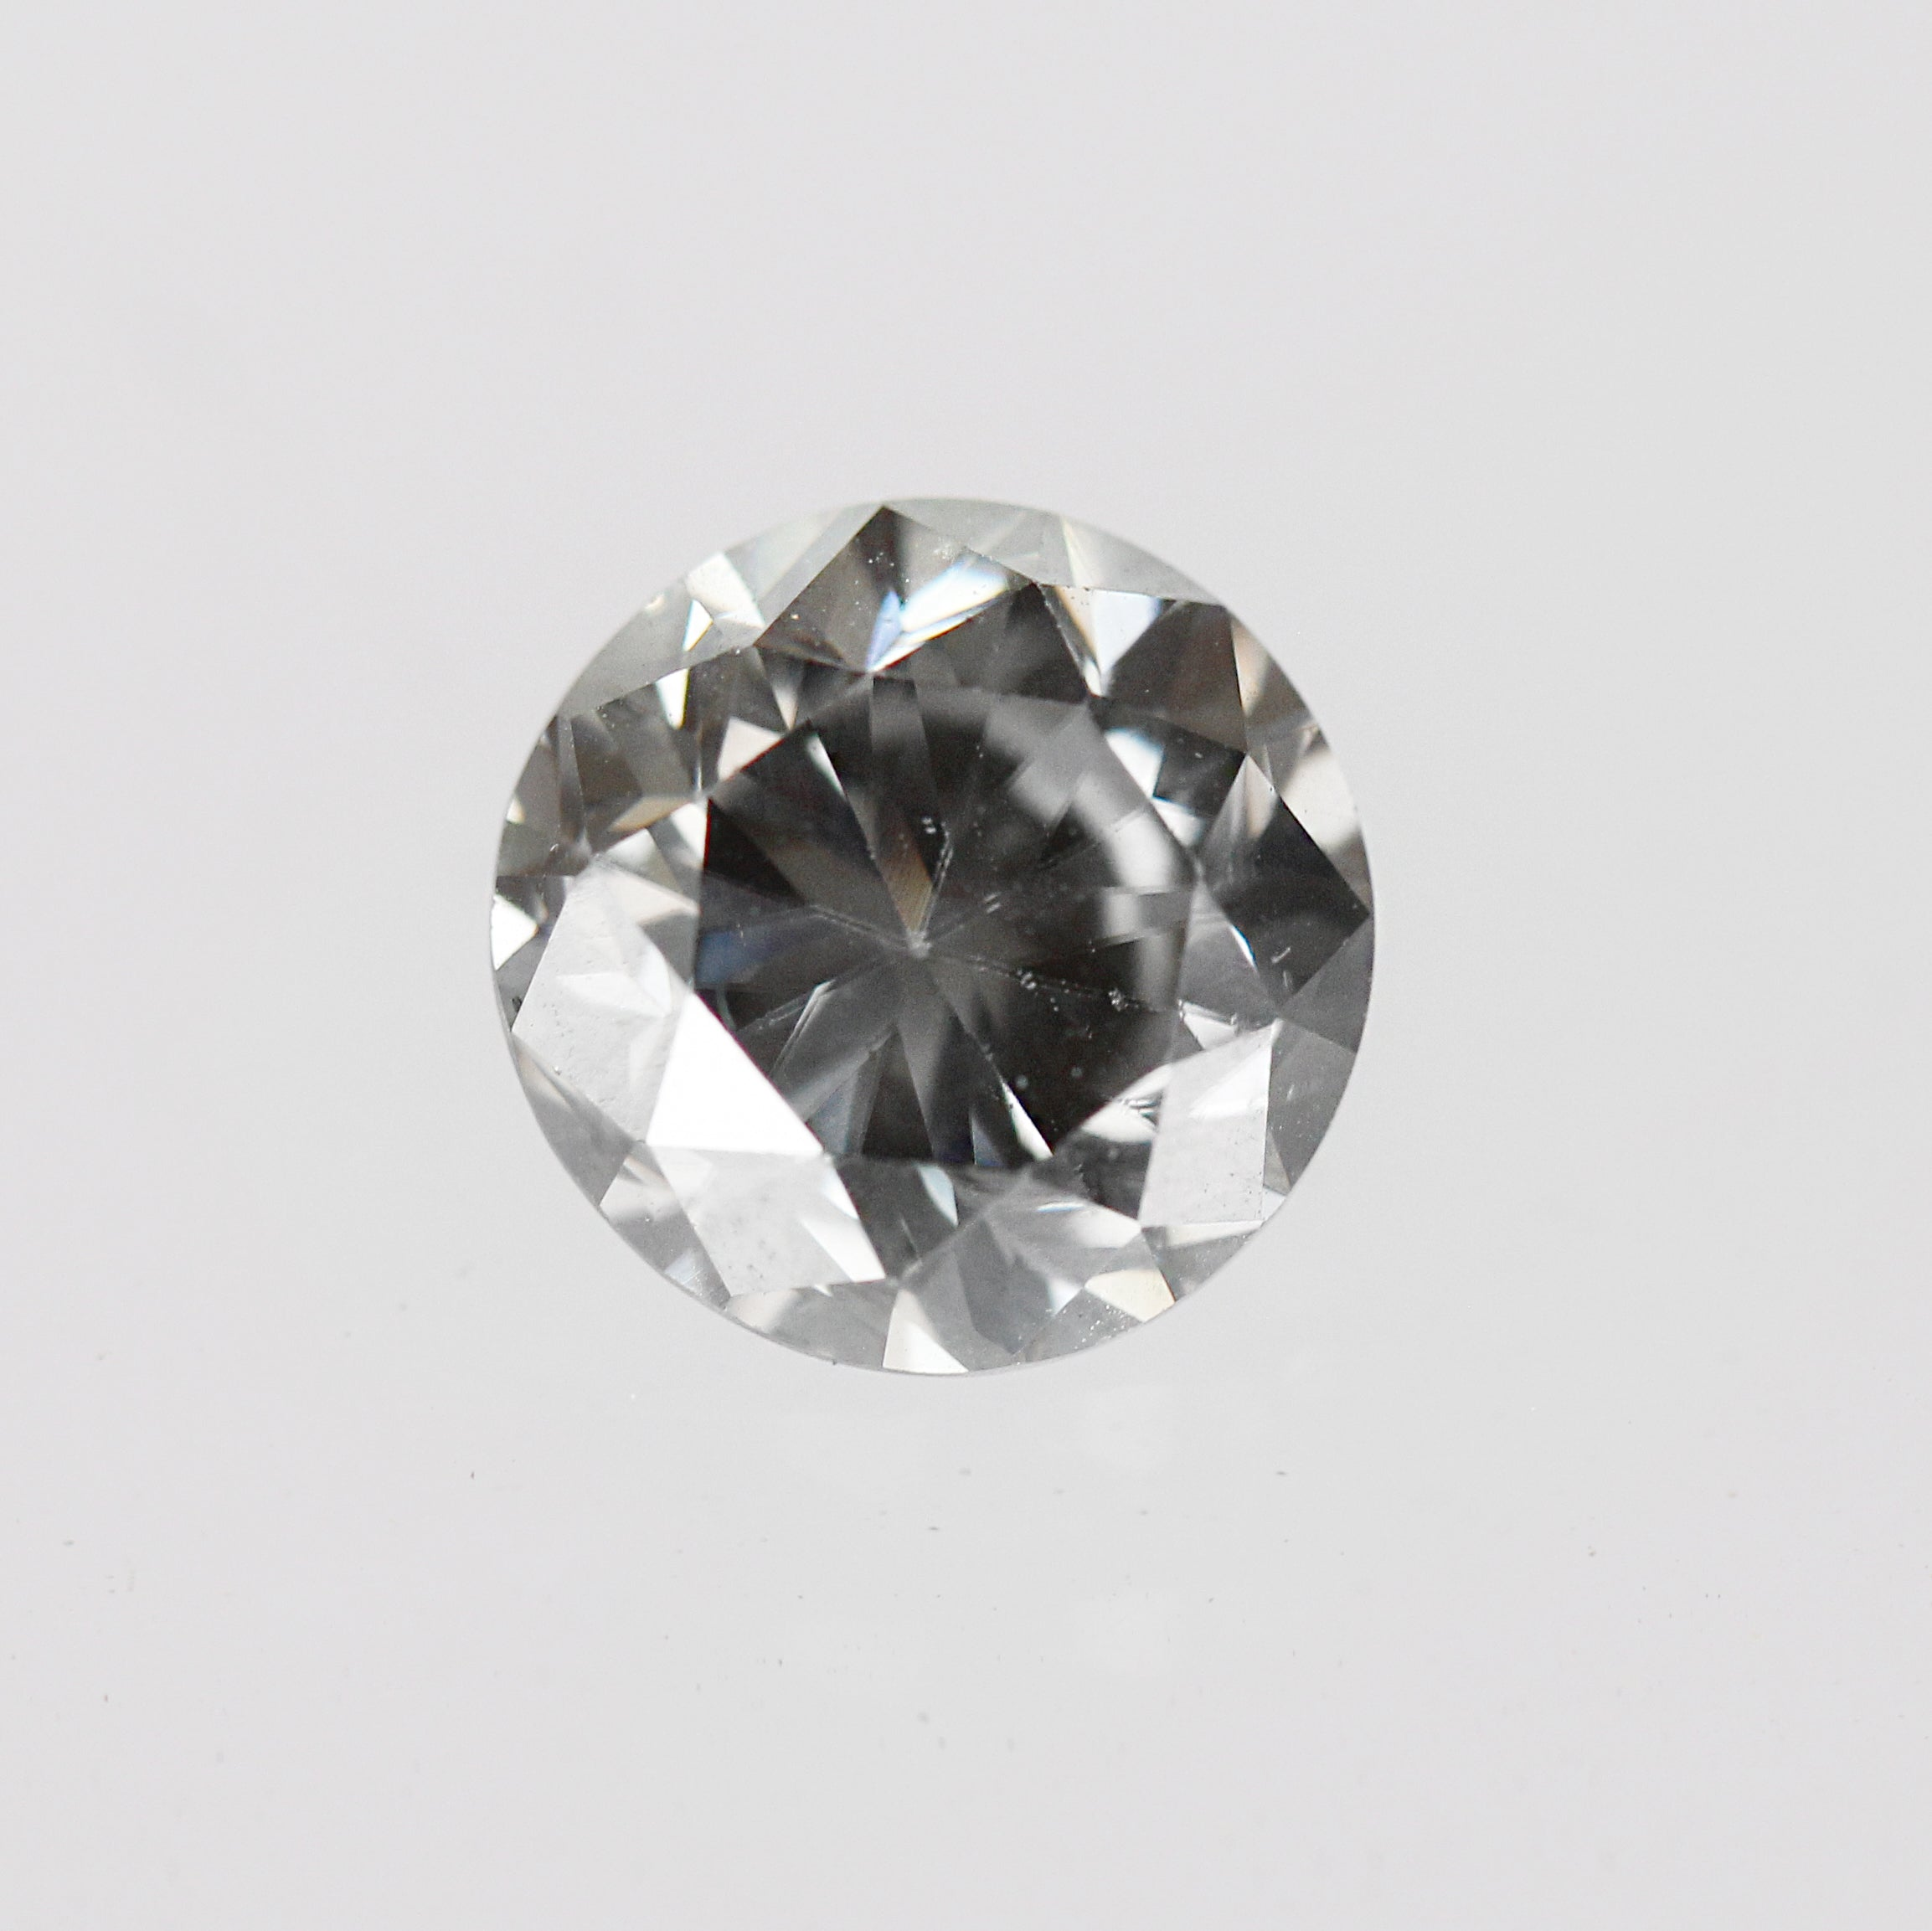 2.64 Carat Round Moissanite for Custom Work- Inventory Code RBMOI264 - Celestial Diamonds ® by Midwinter Co.